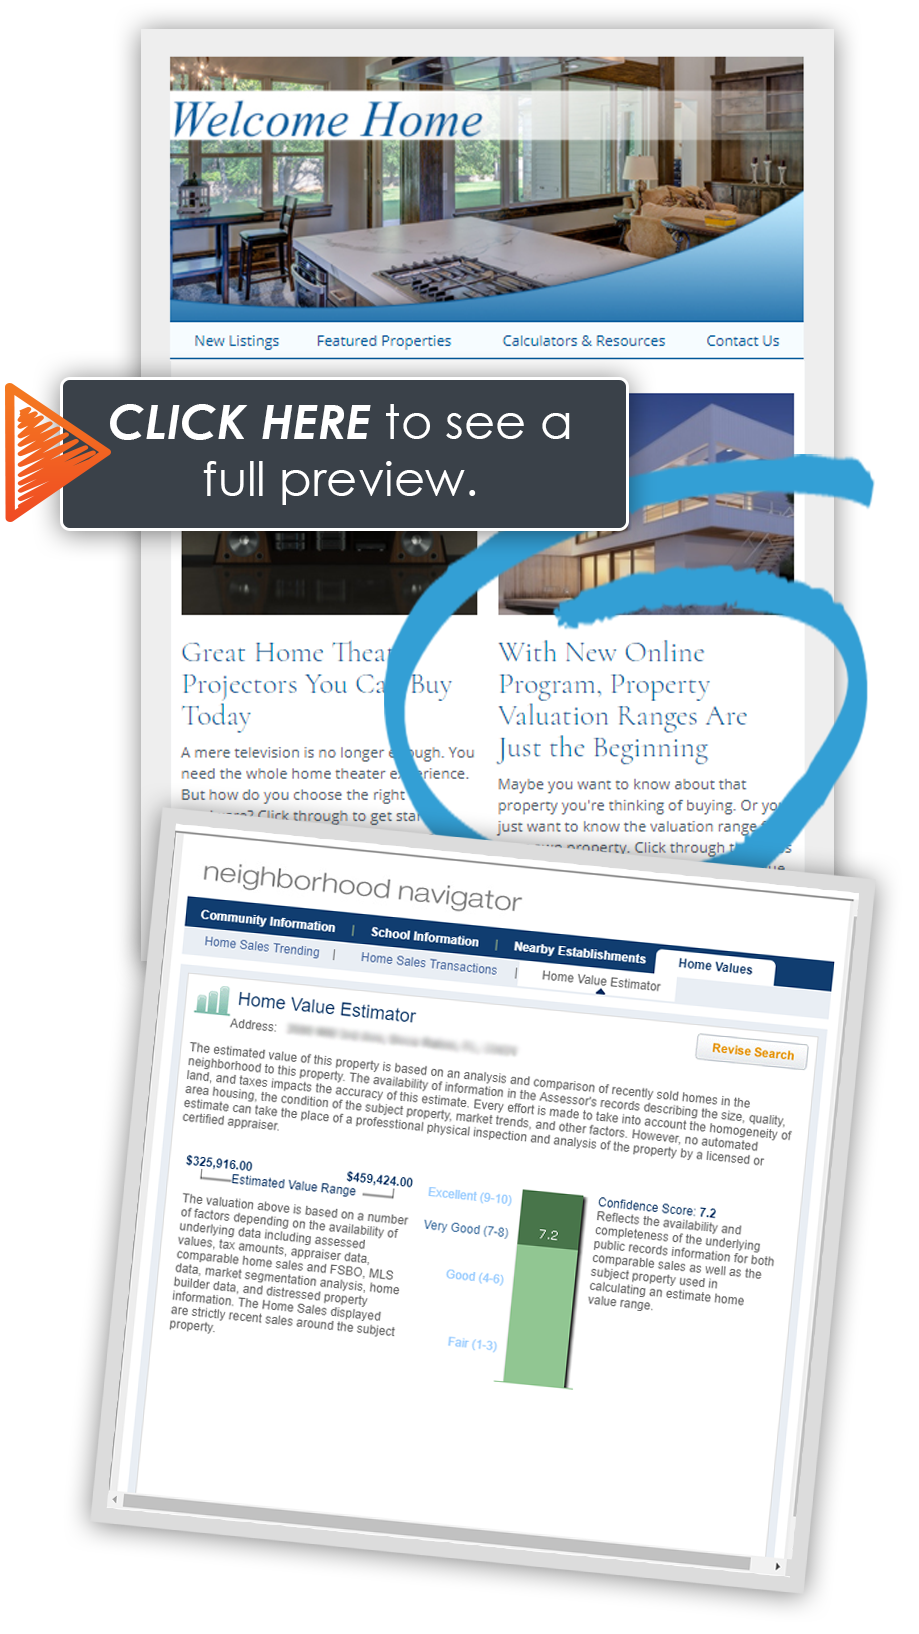 CLICK HERE to view HomeActions AVM email newsletter content for real estate agents.